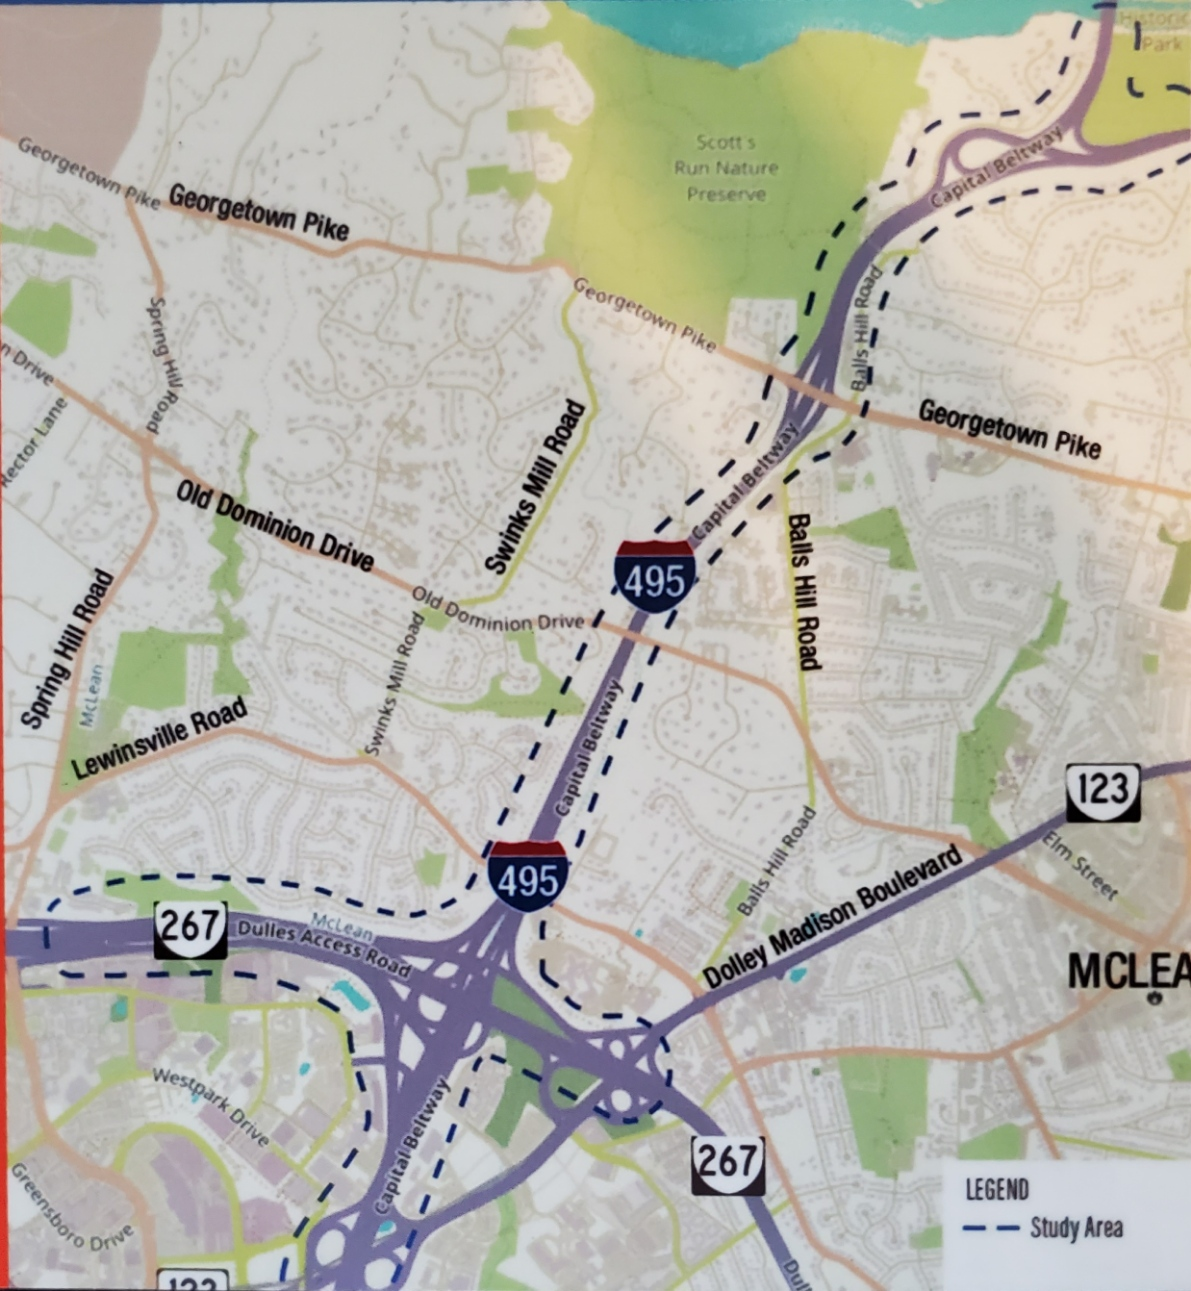 VDOT Public Hearing for the 495 Express Lanes Northern Extension scheduled for 10/5/20